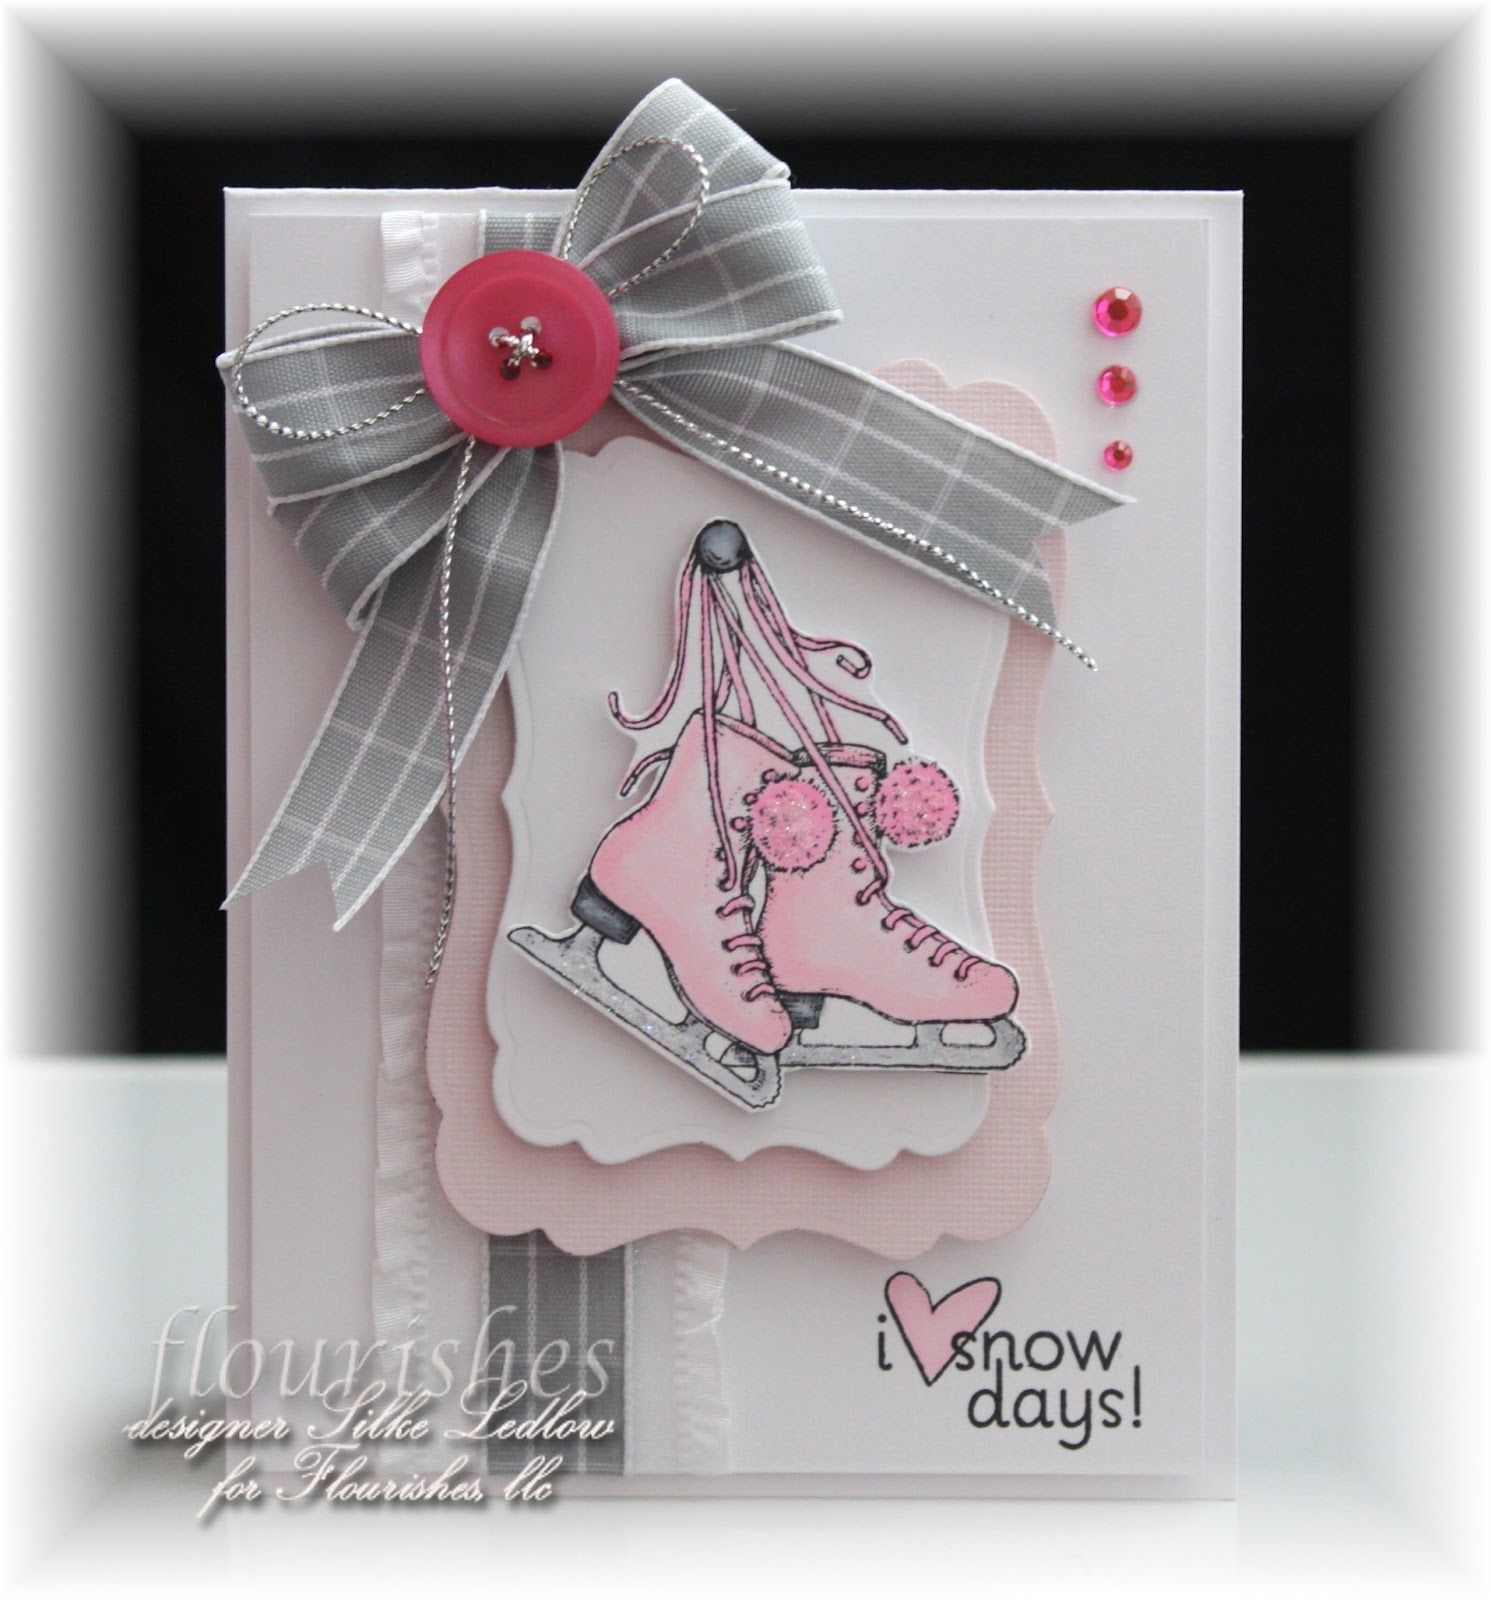 pink ice skate - would be a cute stocking